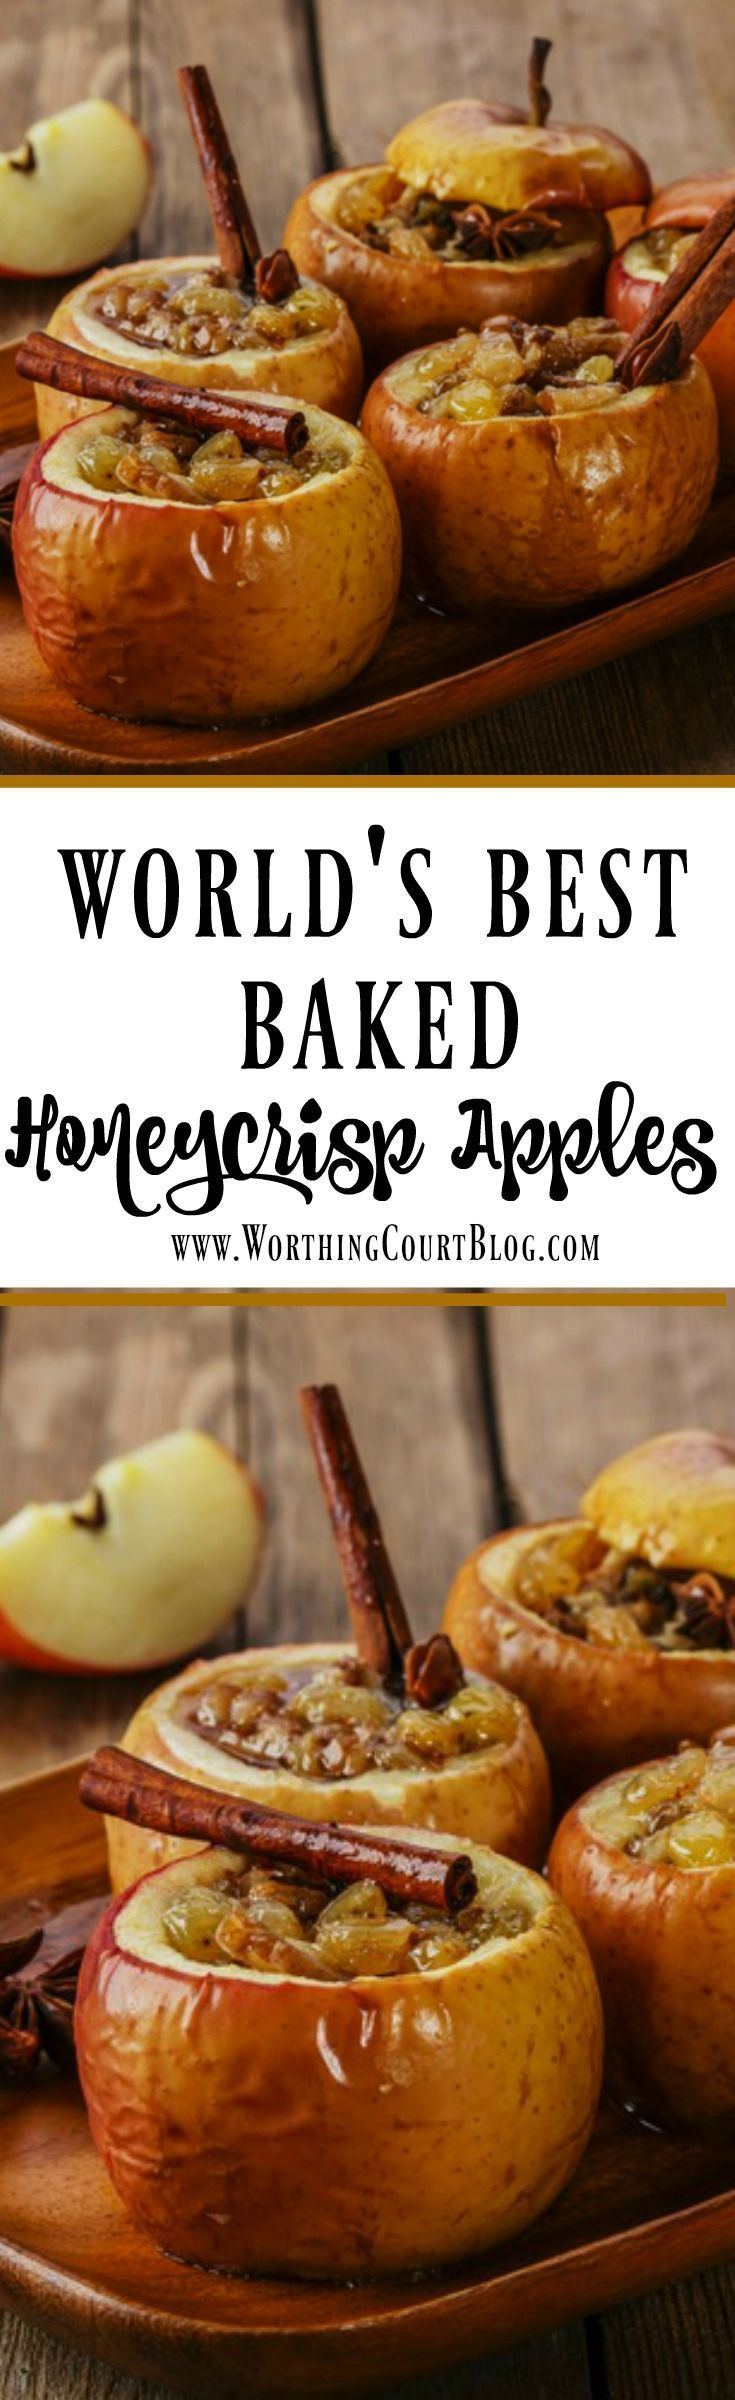 baked honeycrisp apples best ever halloween recipehalloween